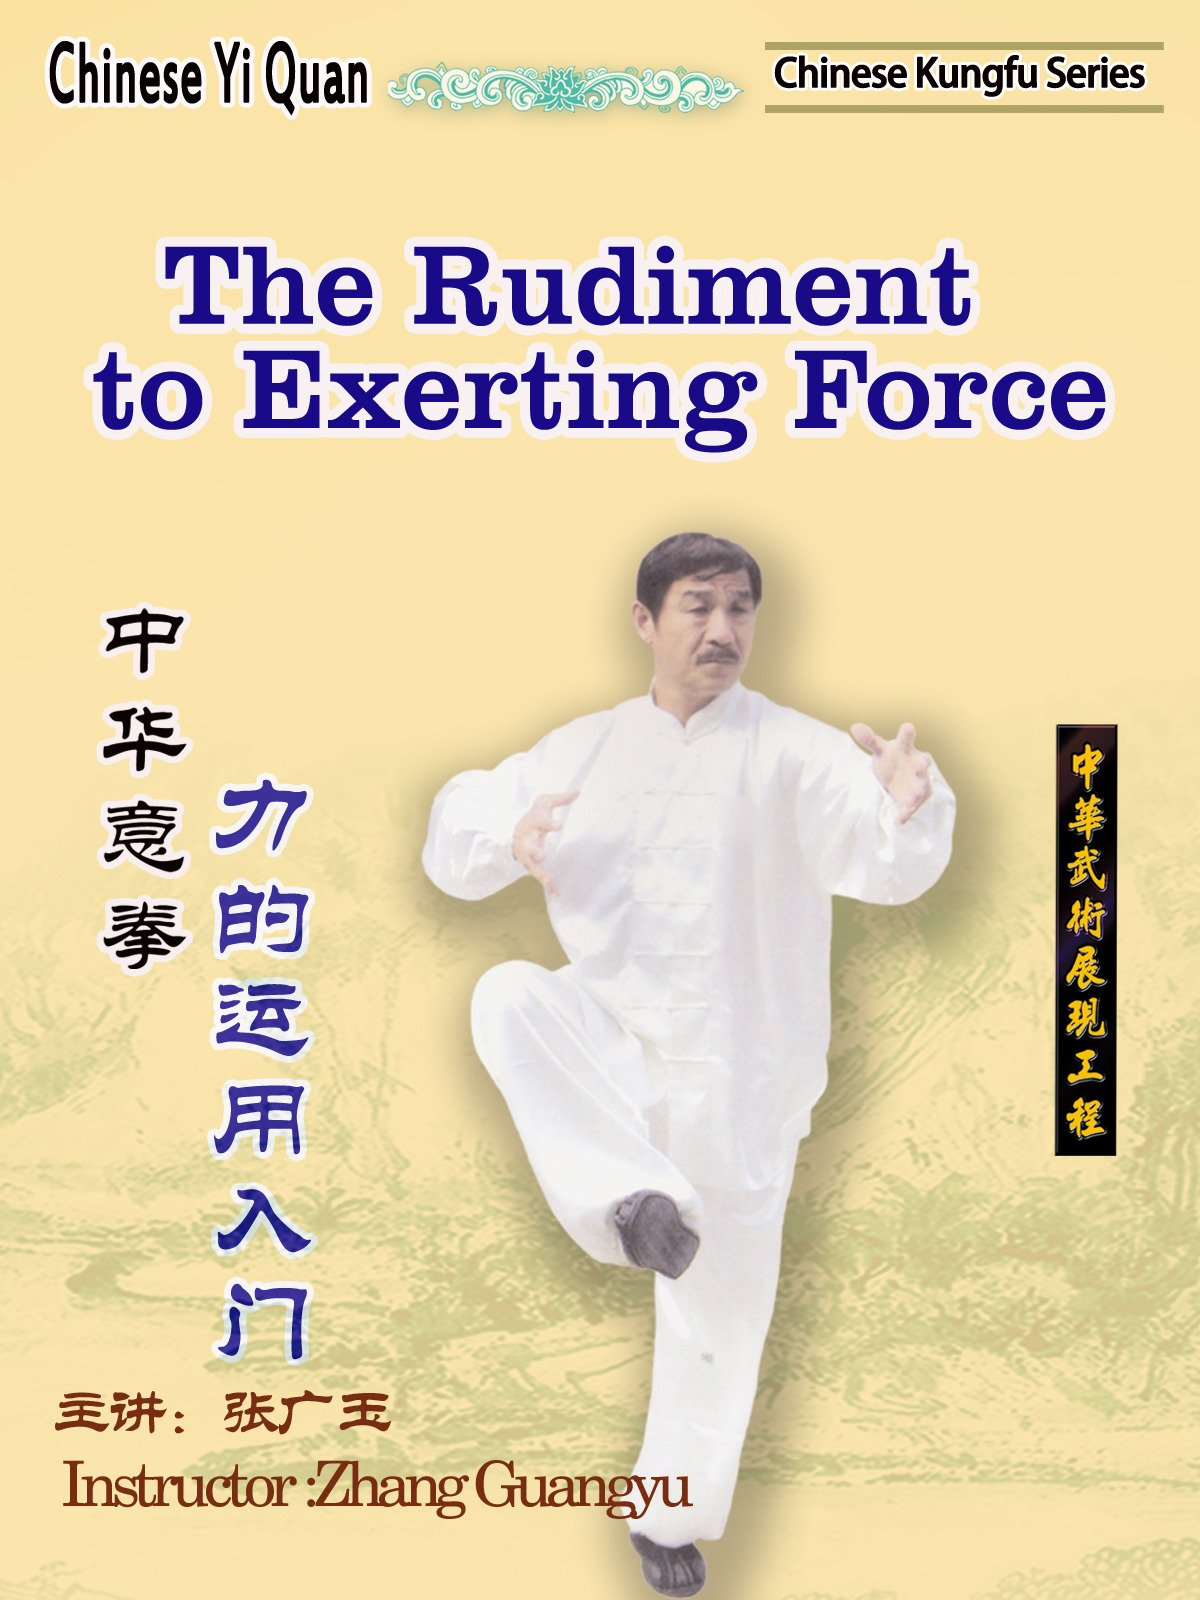 Chinese Yi Quan-The Rudiment to Exerting Force(Instructor :Zhang Guangyu) on Amazon Prime Video UK